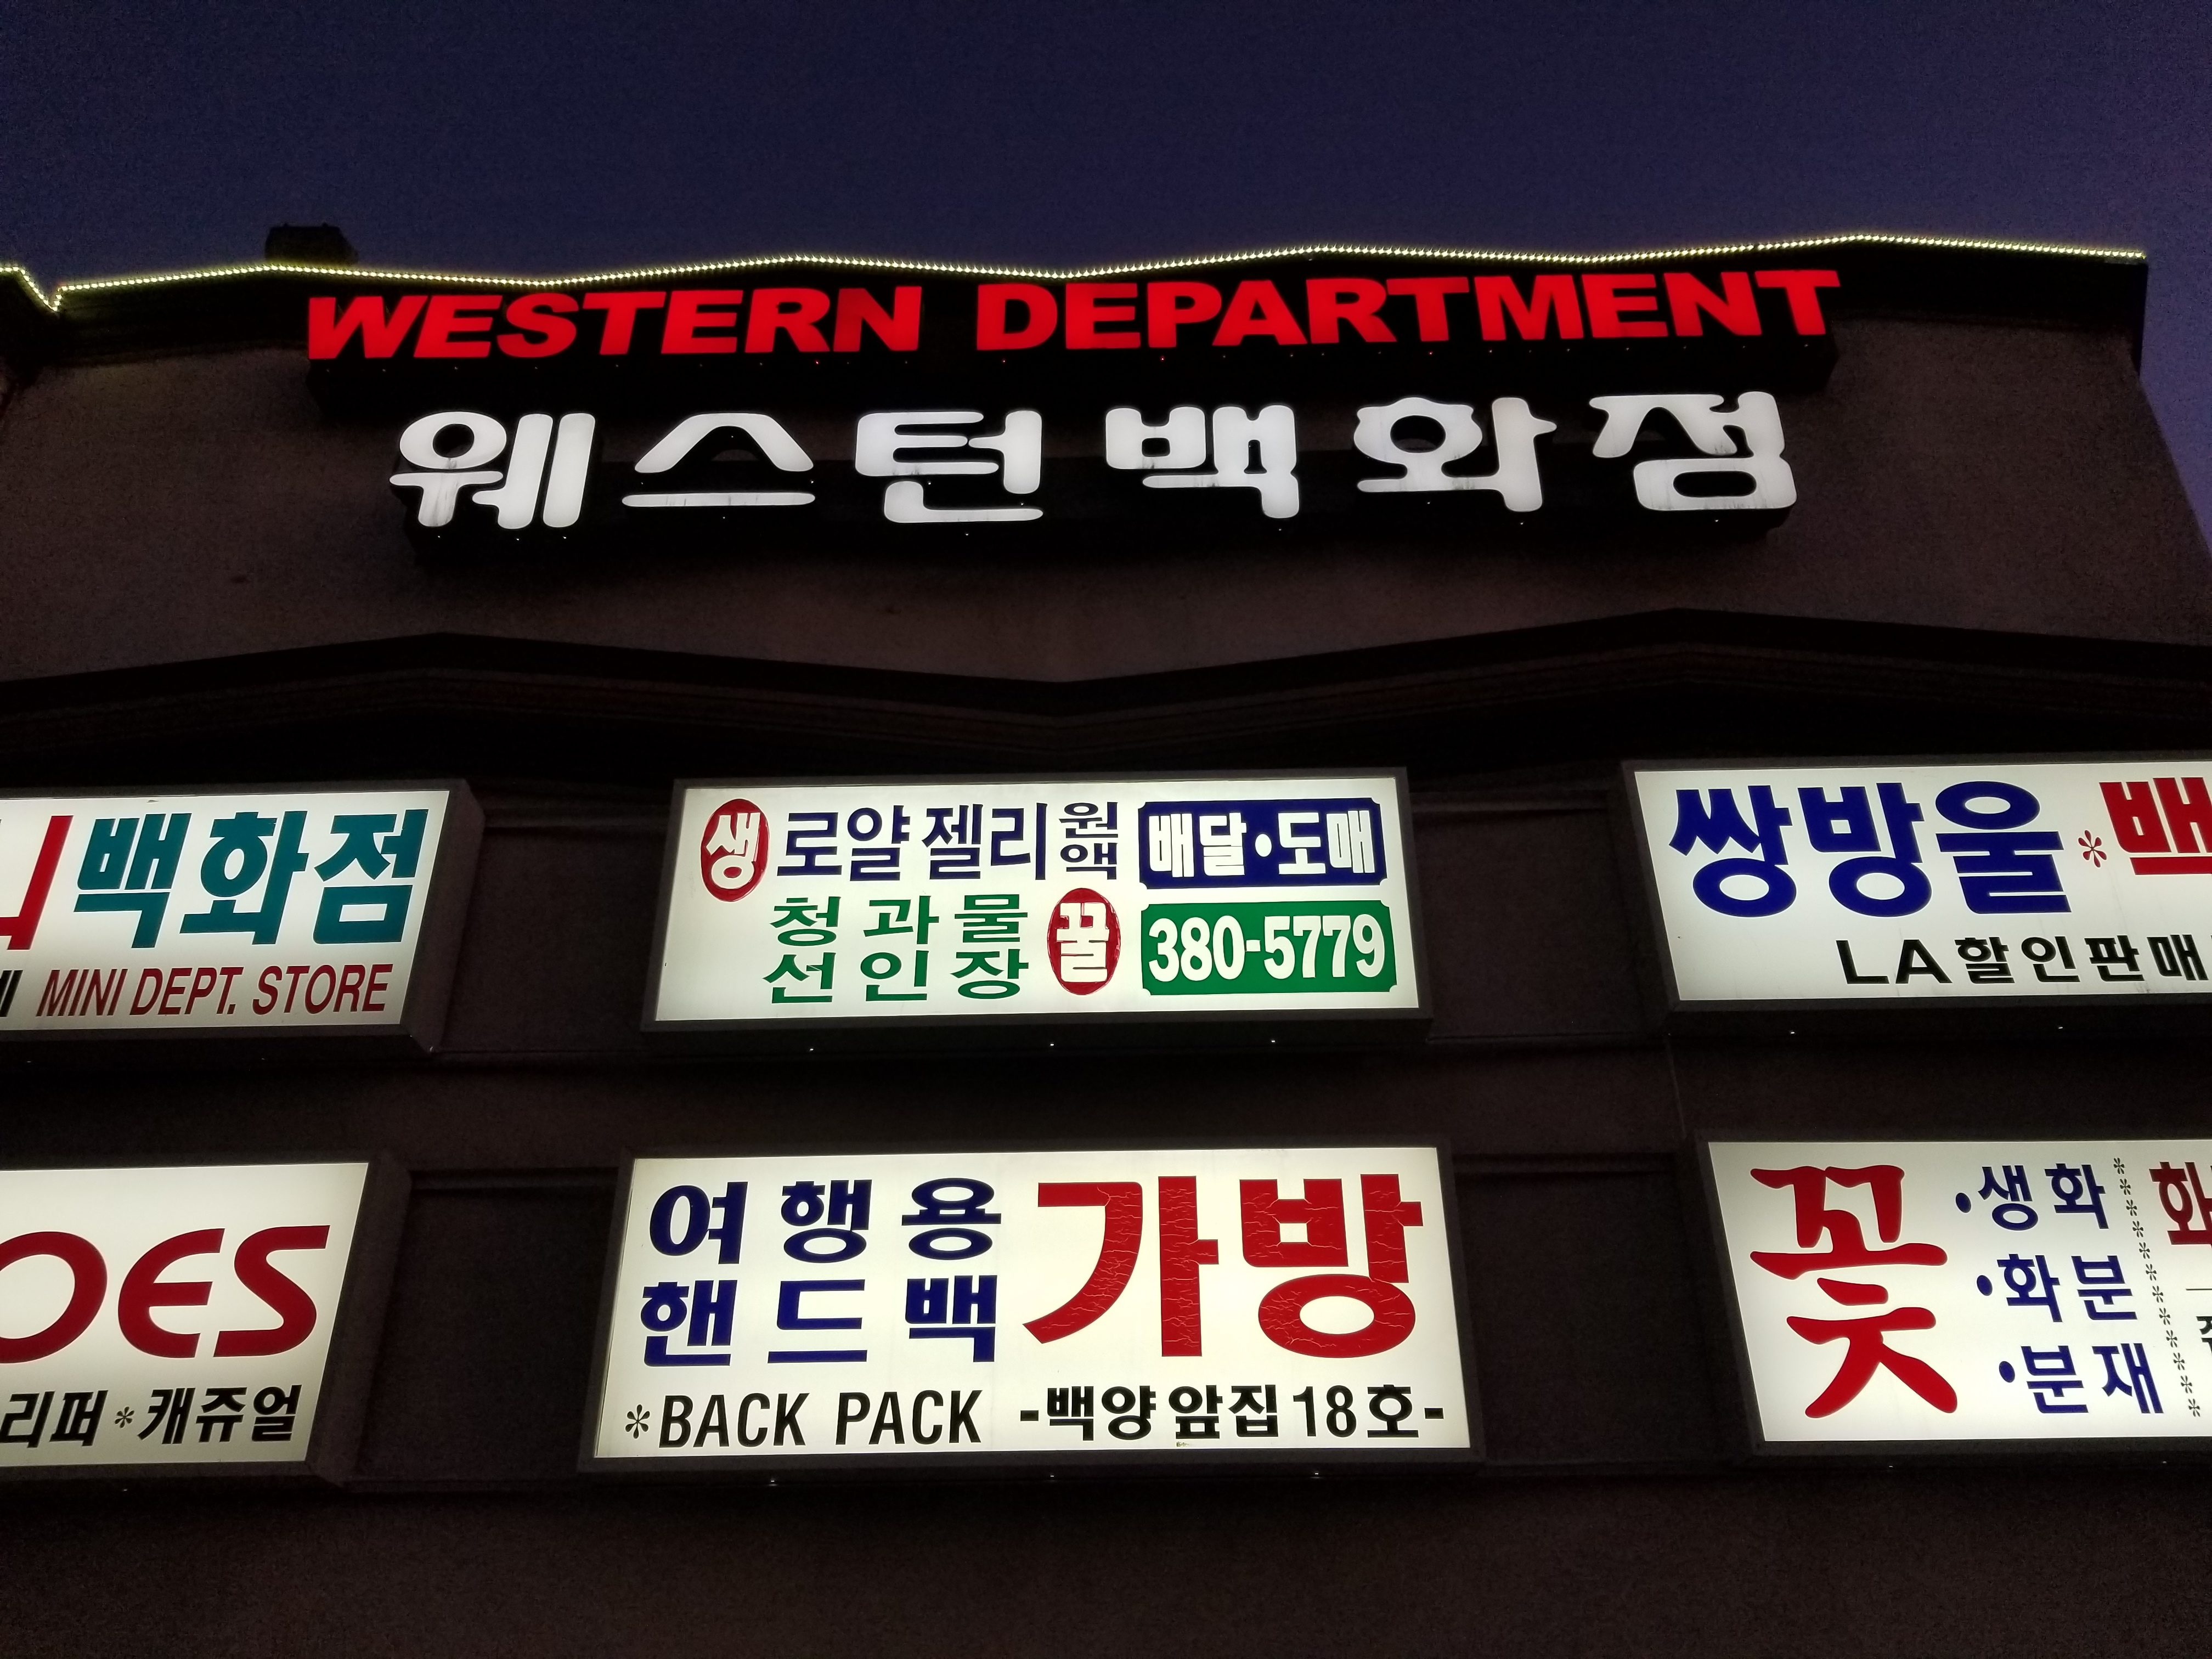 Koreatown Signage Is a Defiant Indicator of the Power of